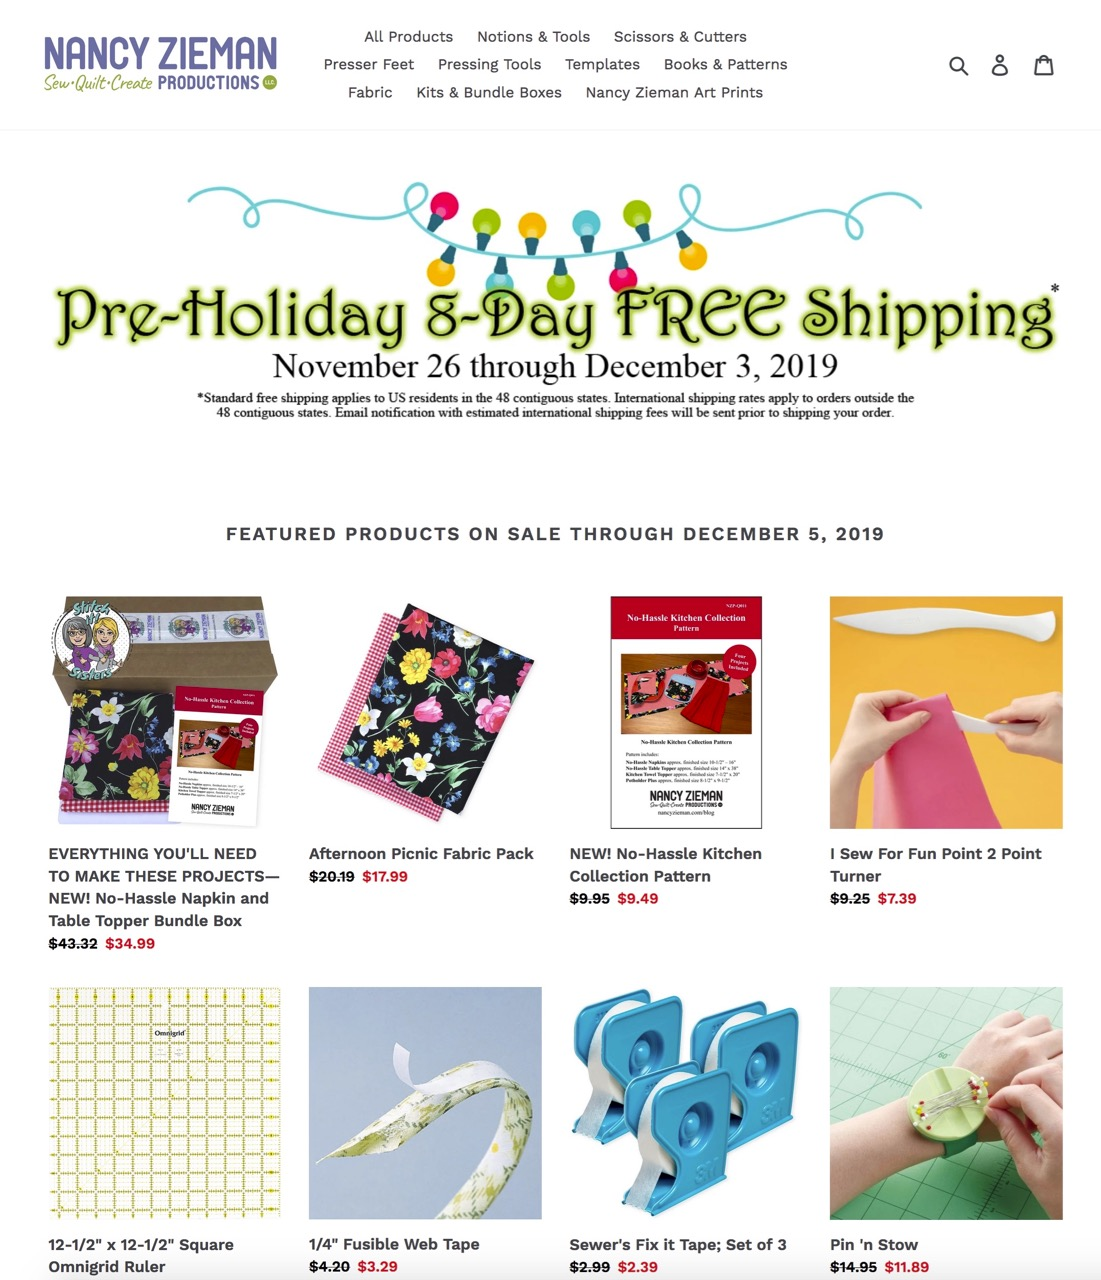 Shop the New NZP Online Store by Nancy Zieman Productions at shopnzp.com